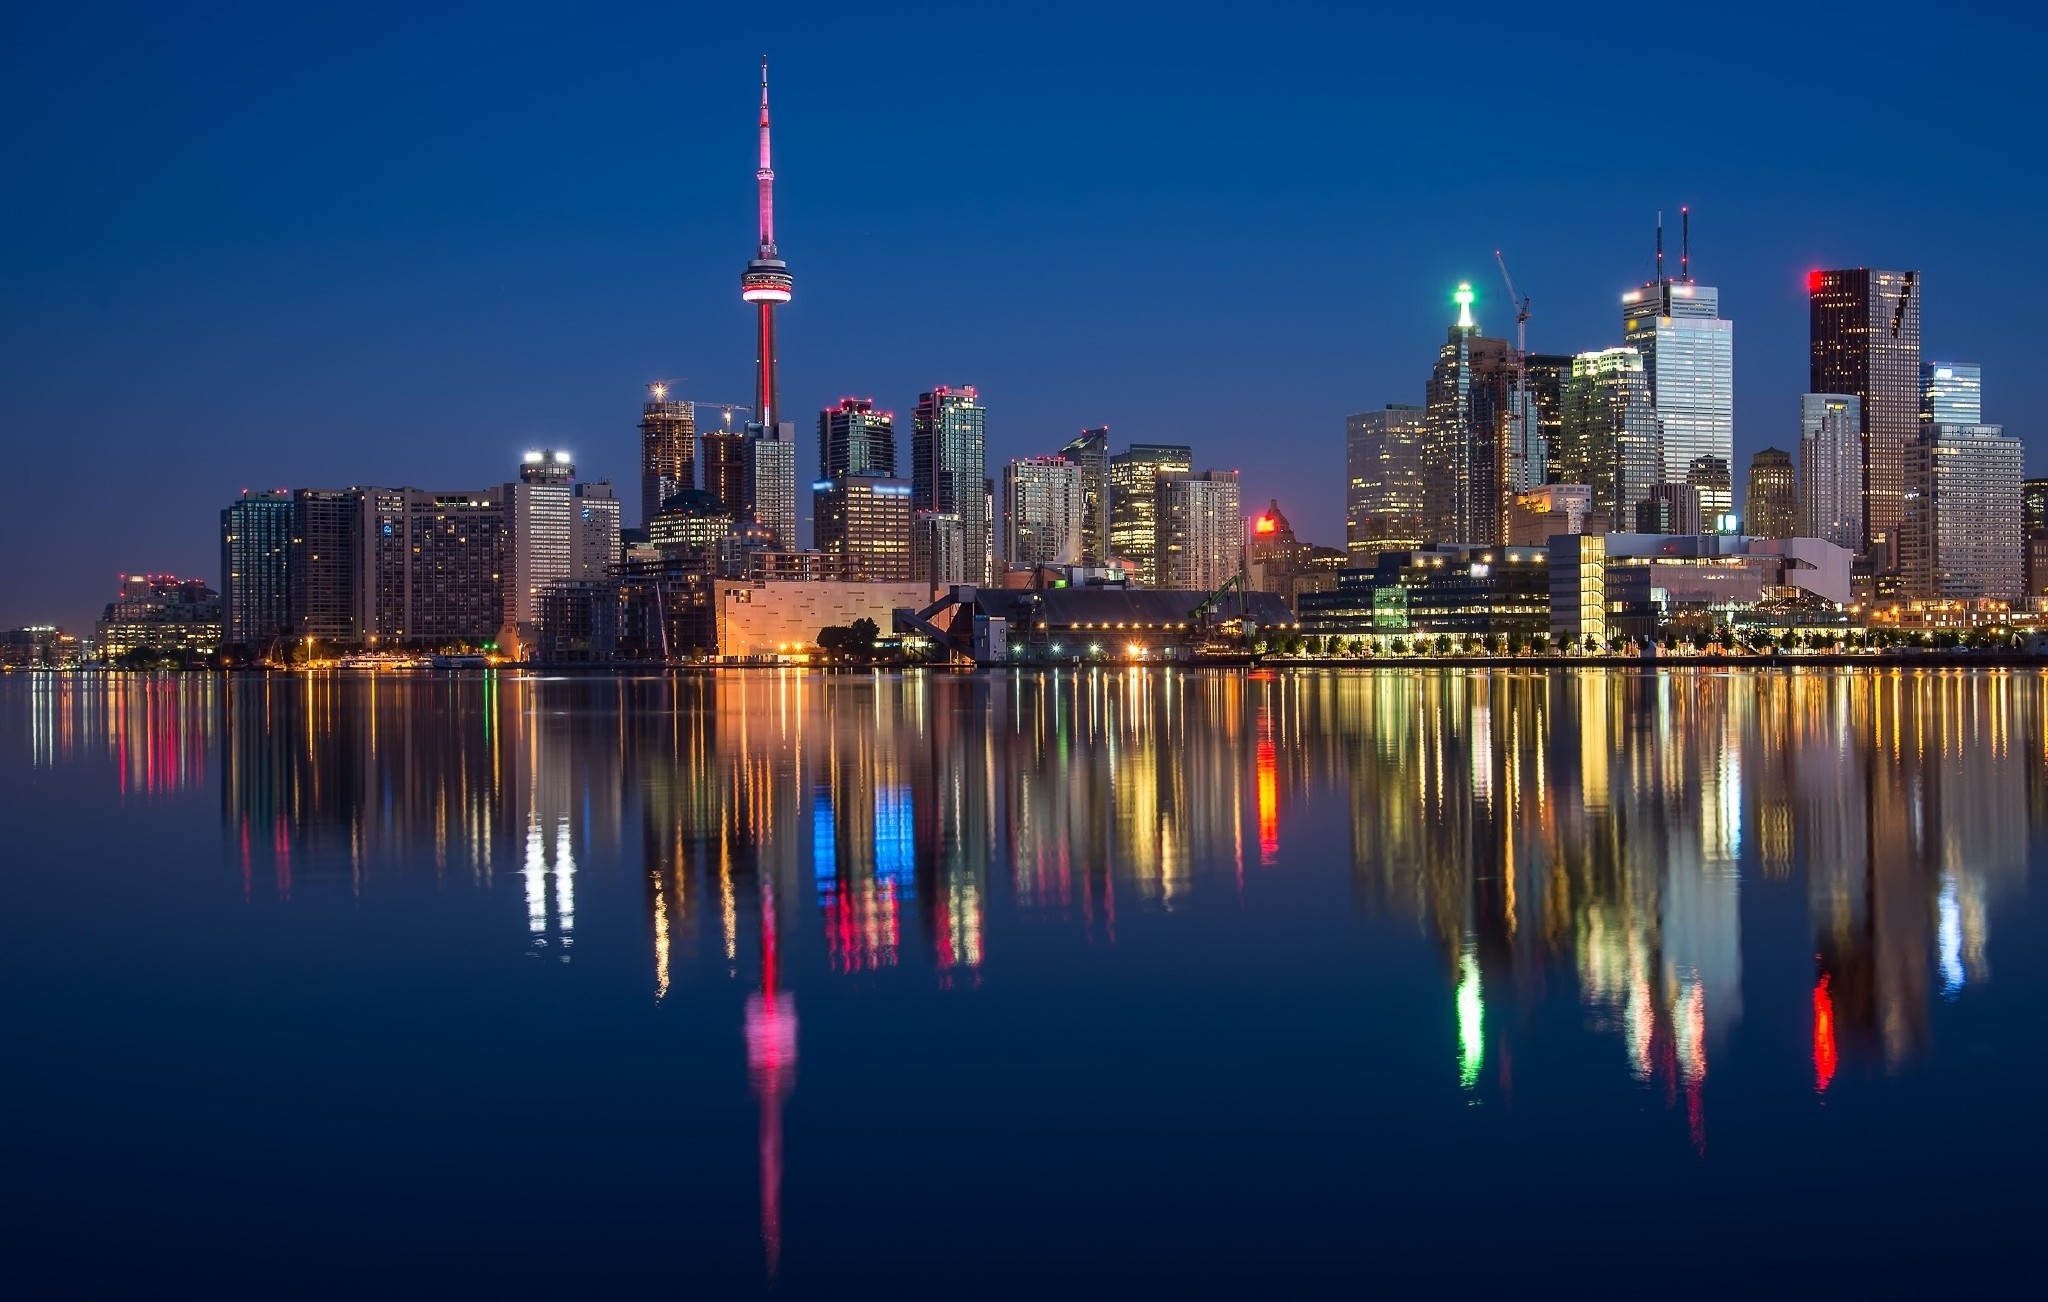 Toronto Canada Hd Desktop Wallpaper High Definition Mobile Picture 2048x1302